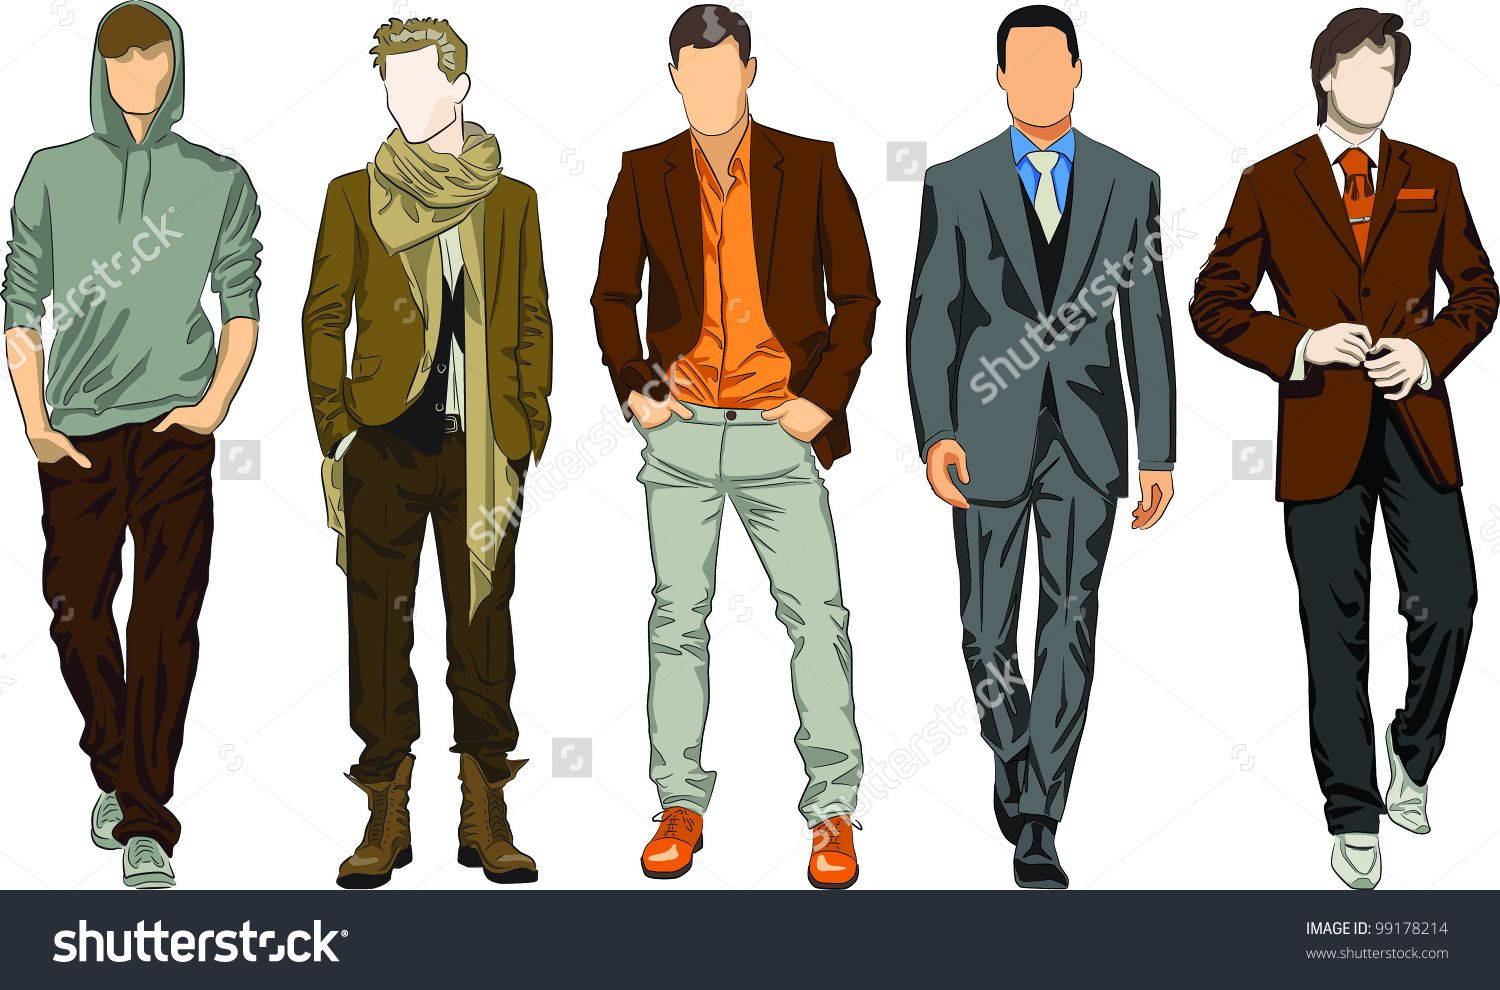 men's clothing descriptions clipart.